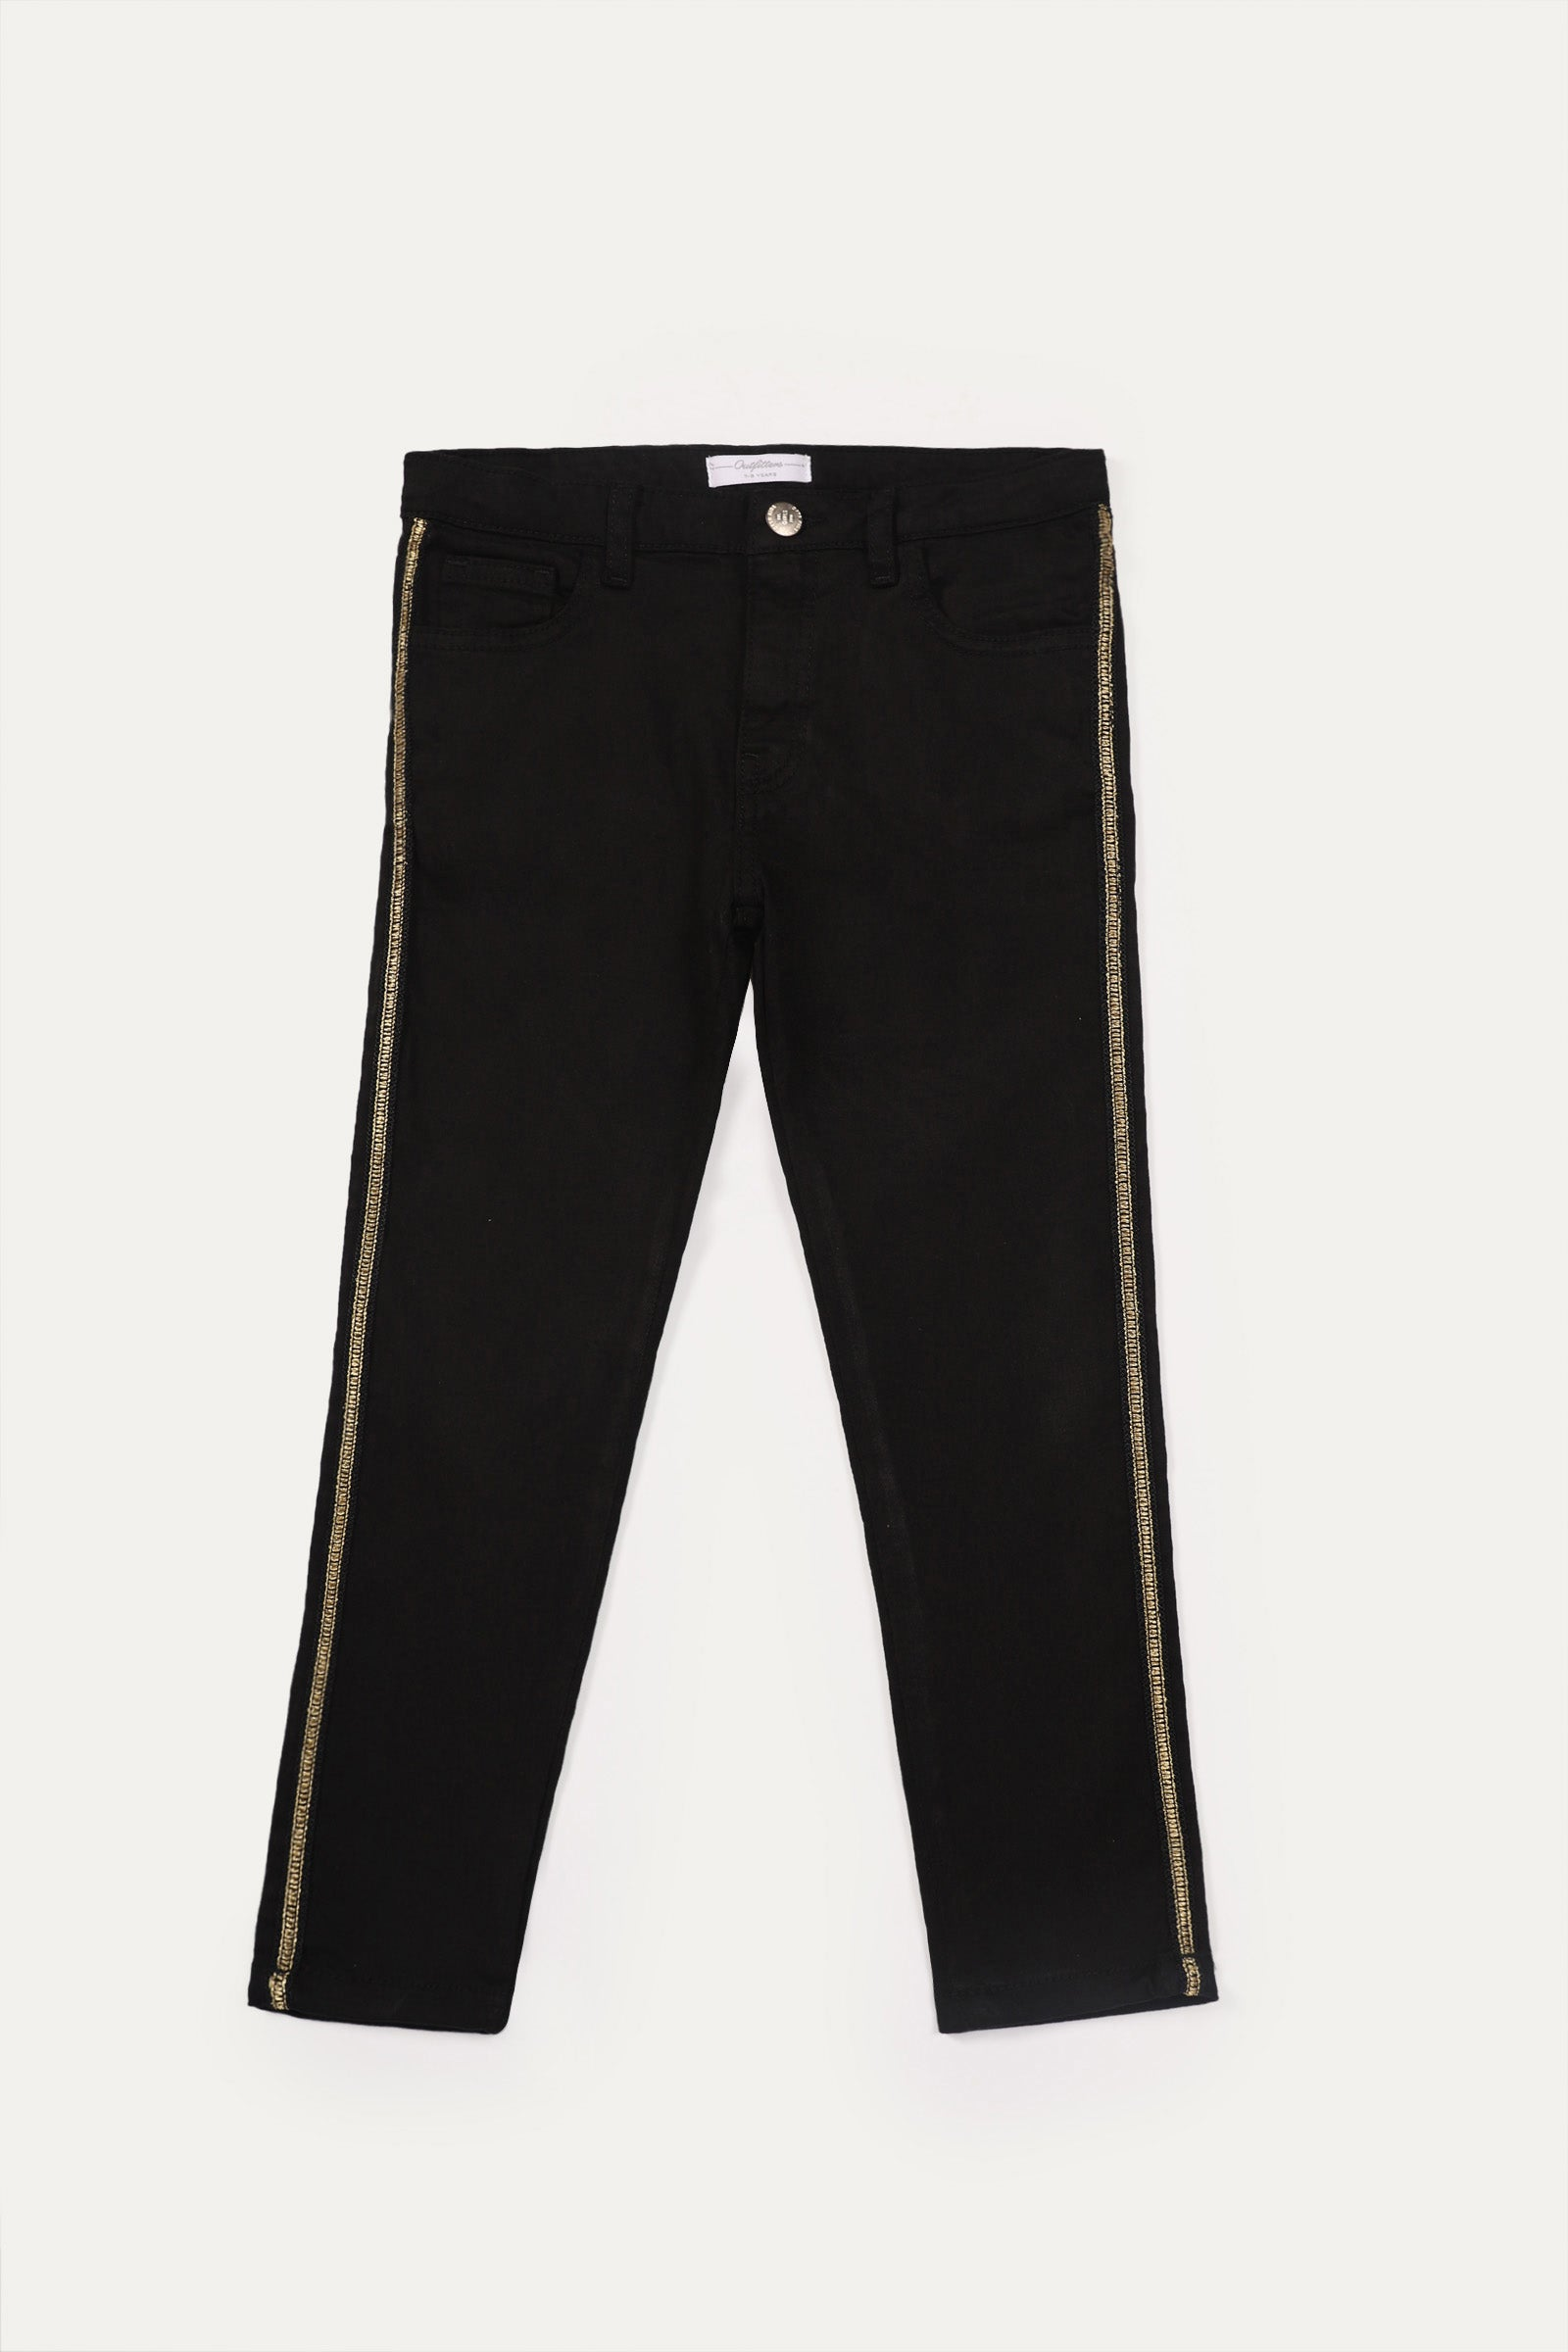 Sides Stripes Chinos Pant